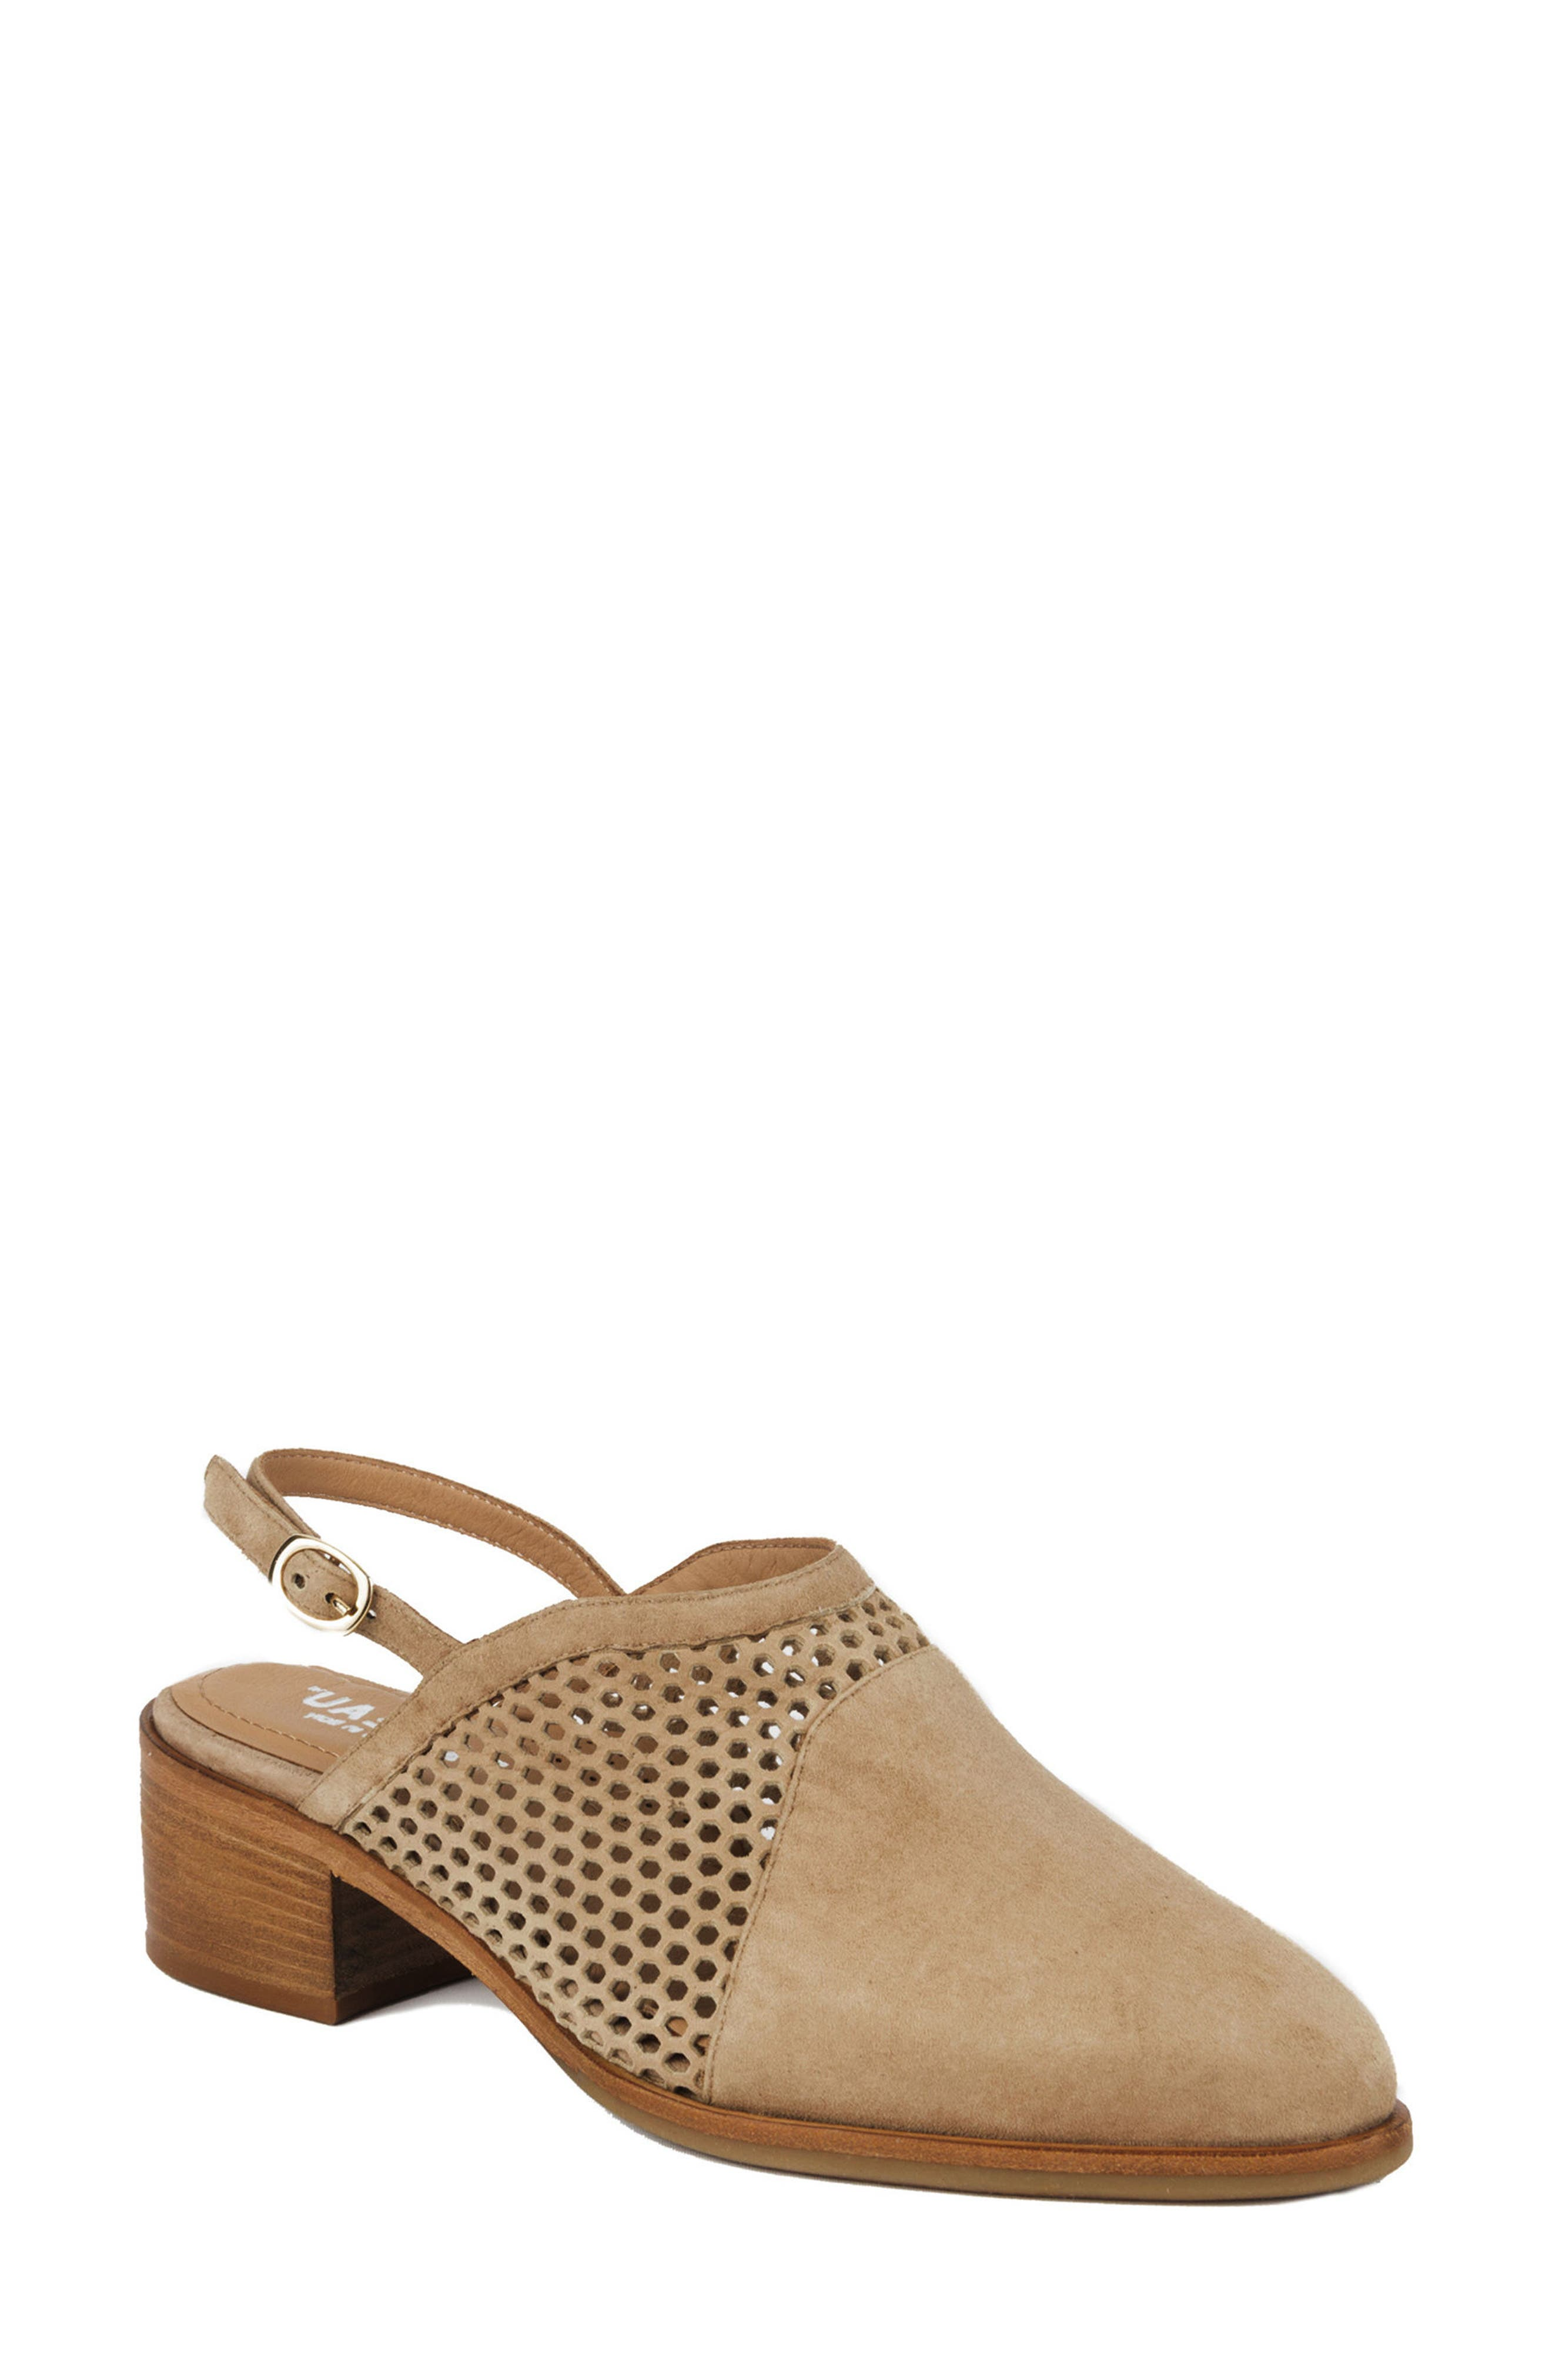 Toselli Water Resistant Slingback Bootie,                             Main thumbnail 1, color,                             Sand